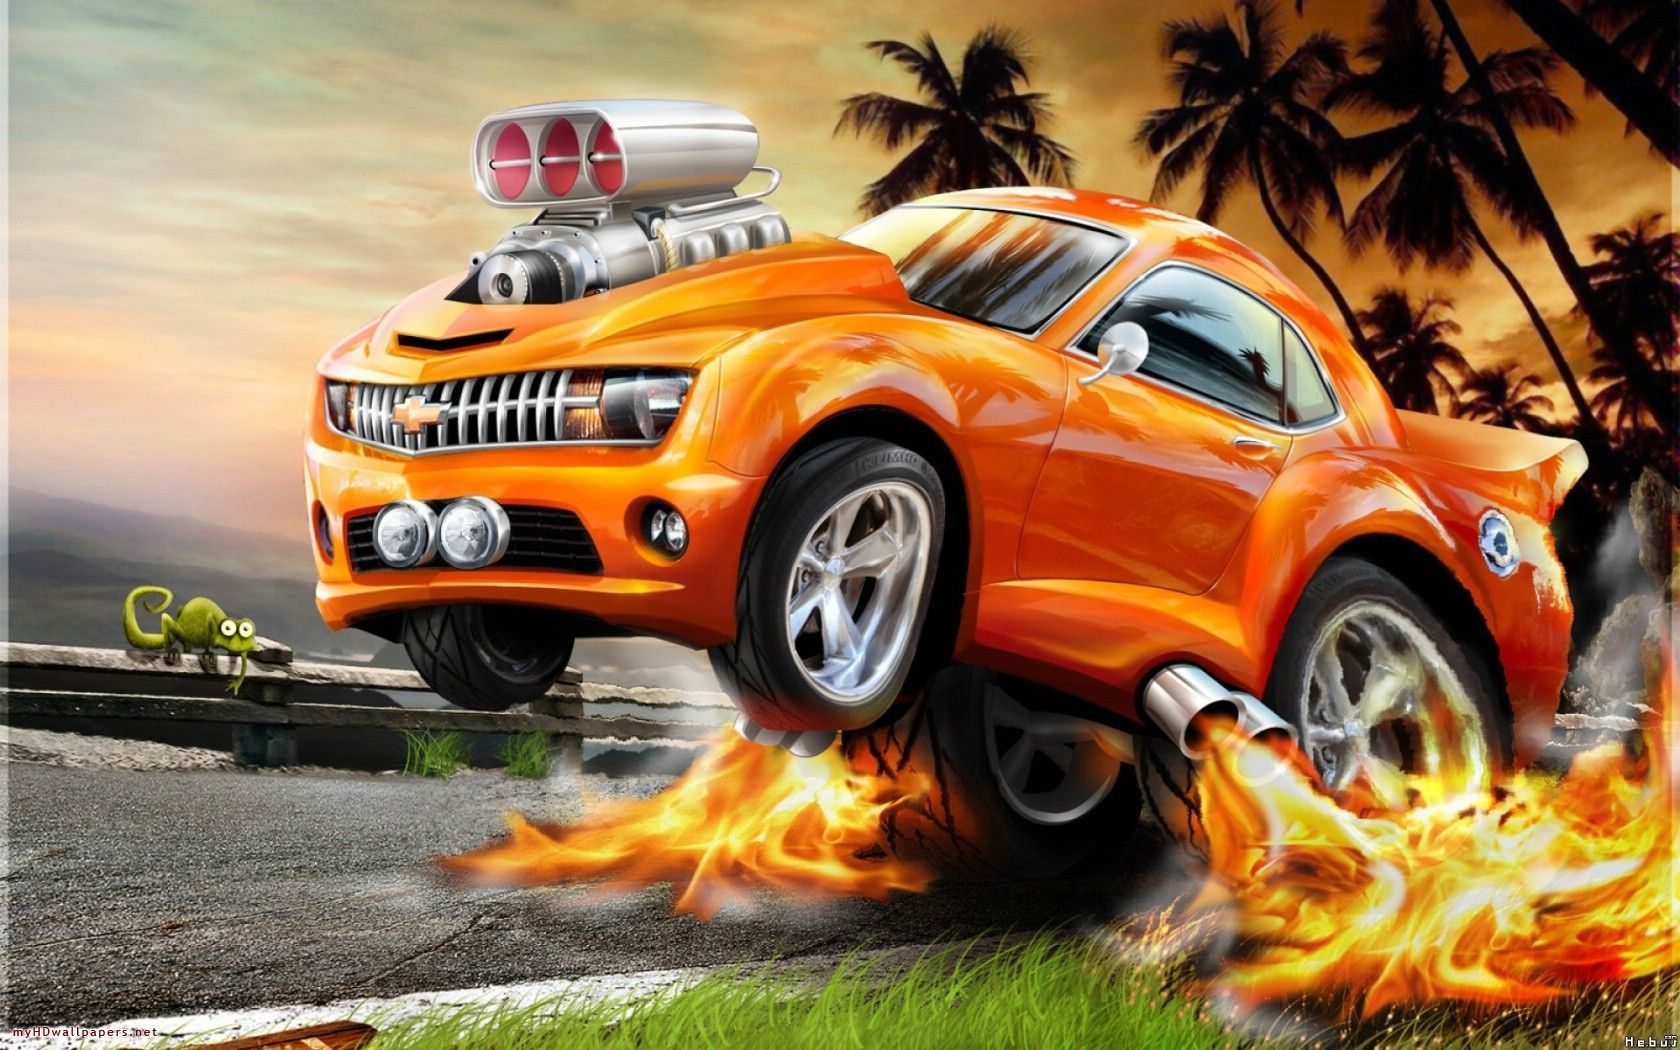 1680x1050 - Wallpaper Cars Cartoon 18